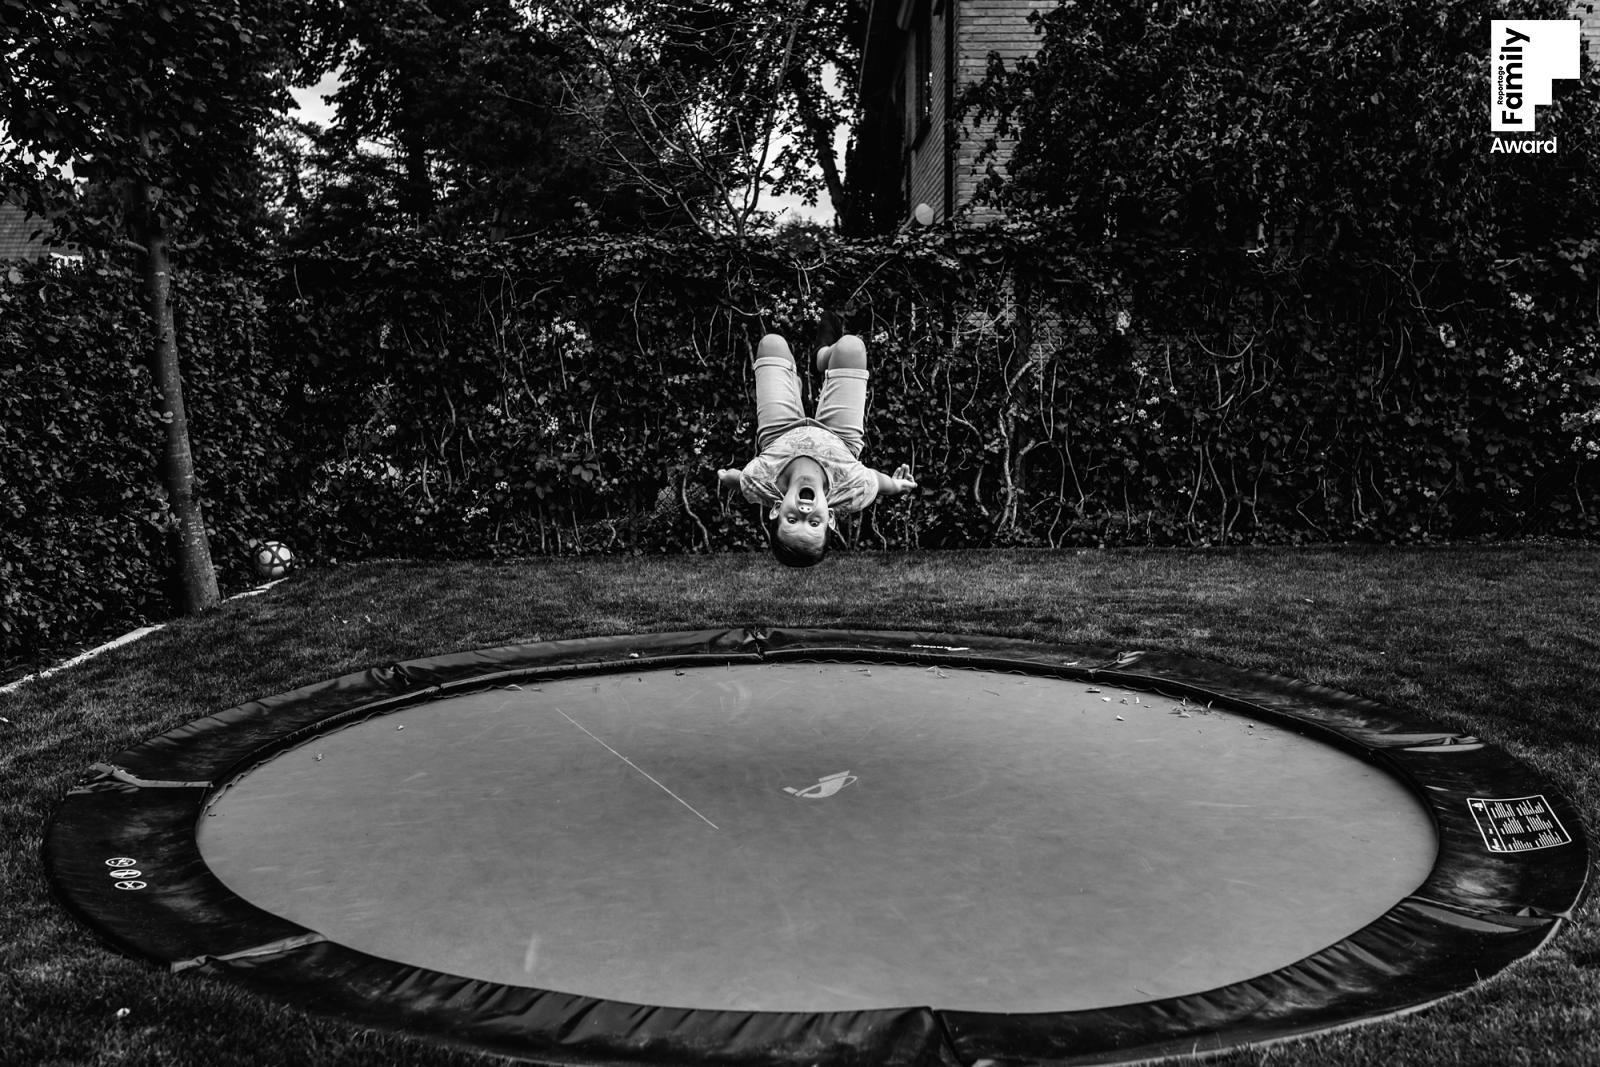 2021-award-2-collection 4-This-is-Reportage-Family-Sandra-Stokmans-Fotografie